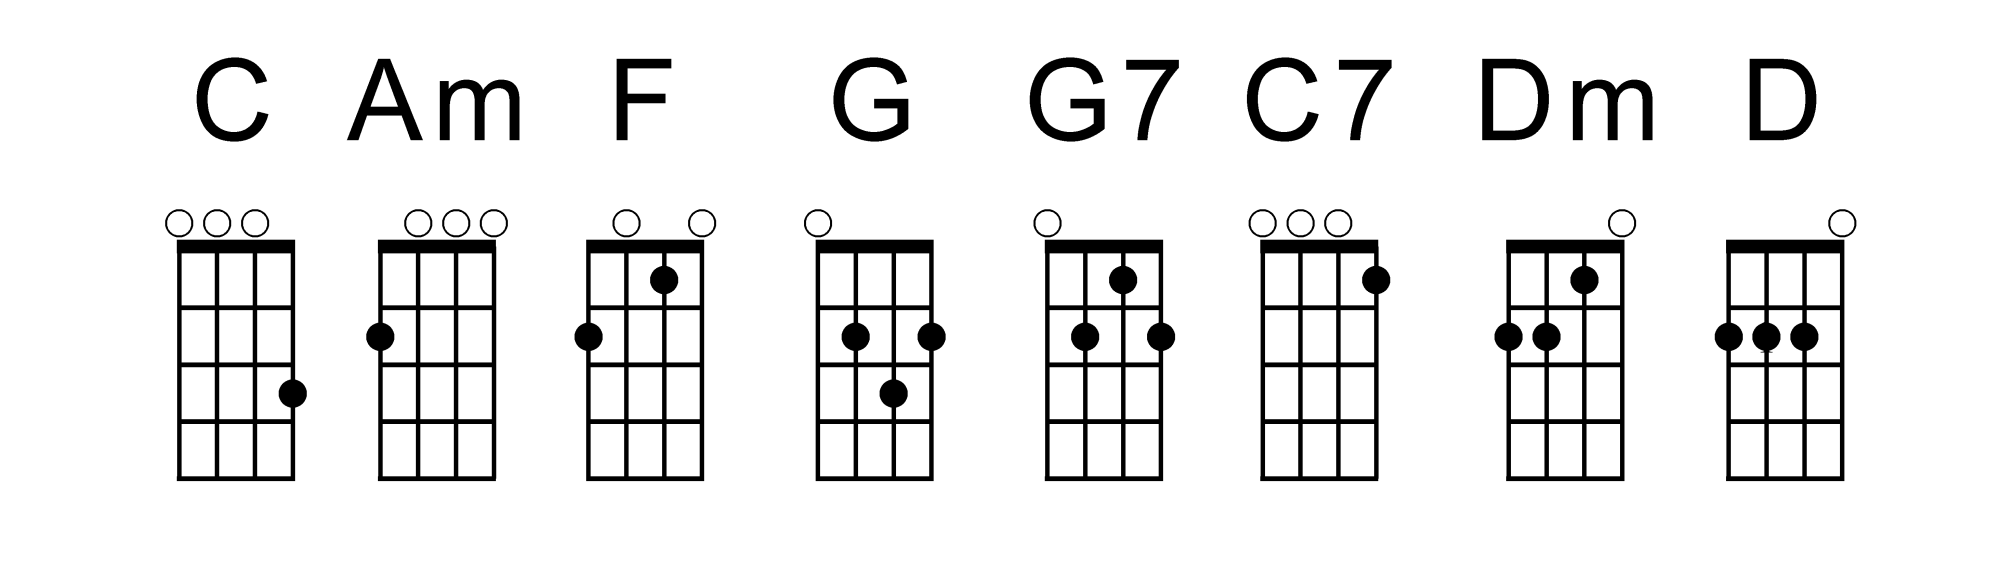 Guitar Scales  The 6 Most Common Guitar Scales